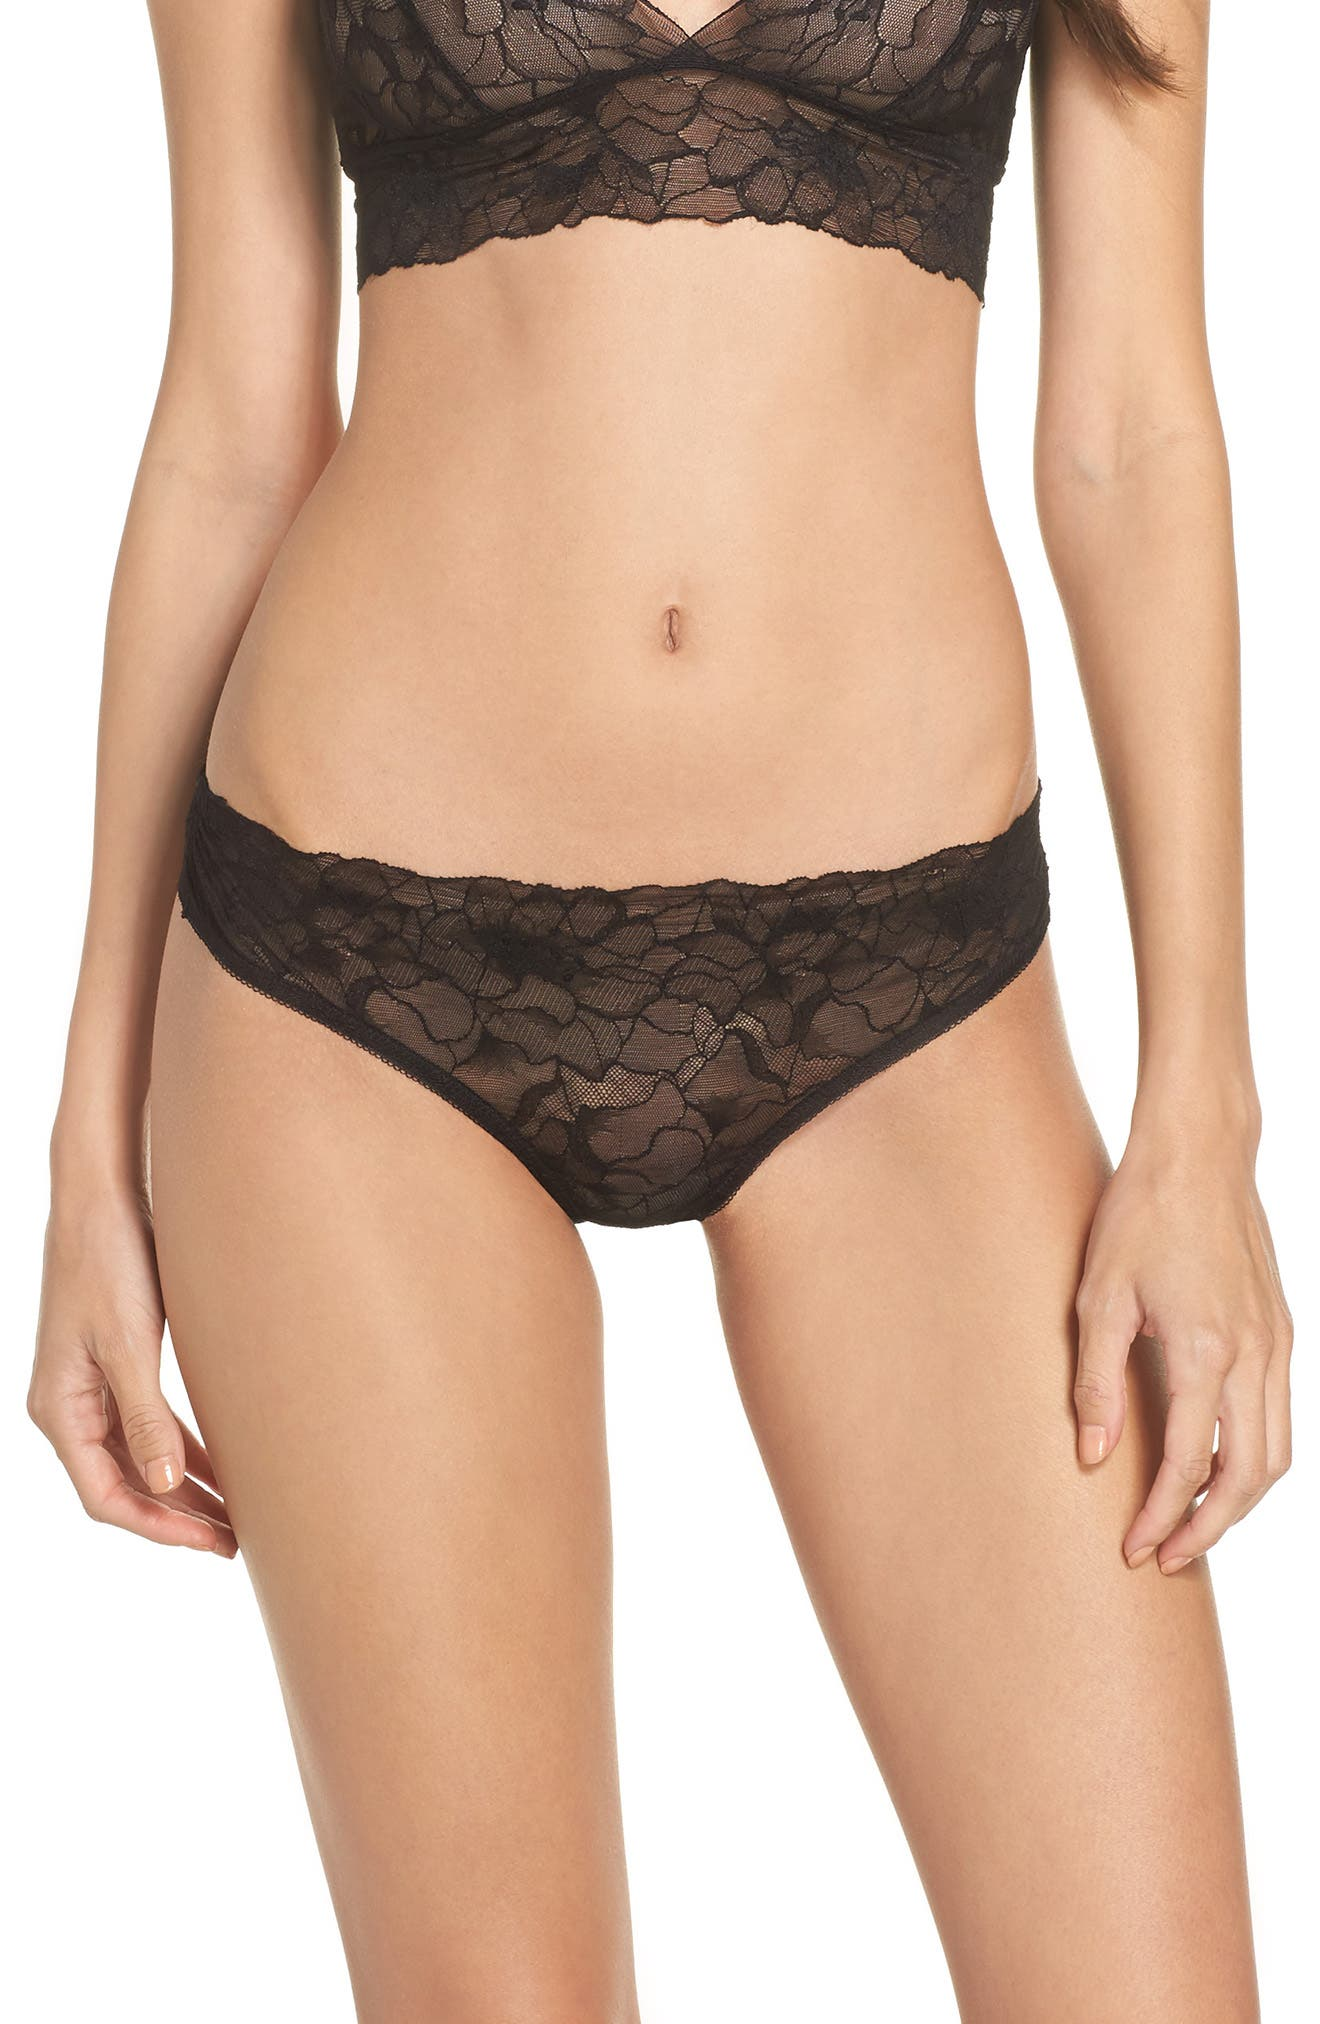 All Lace Glamour Lace Thong,                             Main thumbnail 1, color,                             BLACK